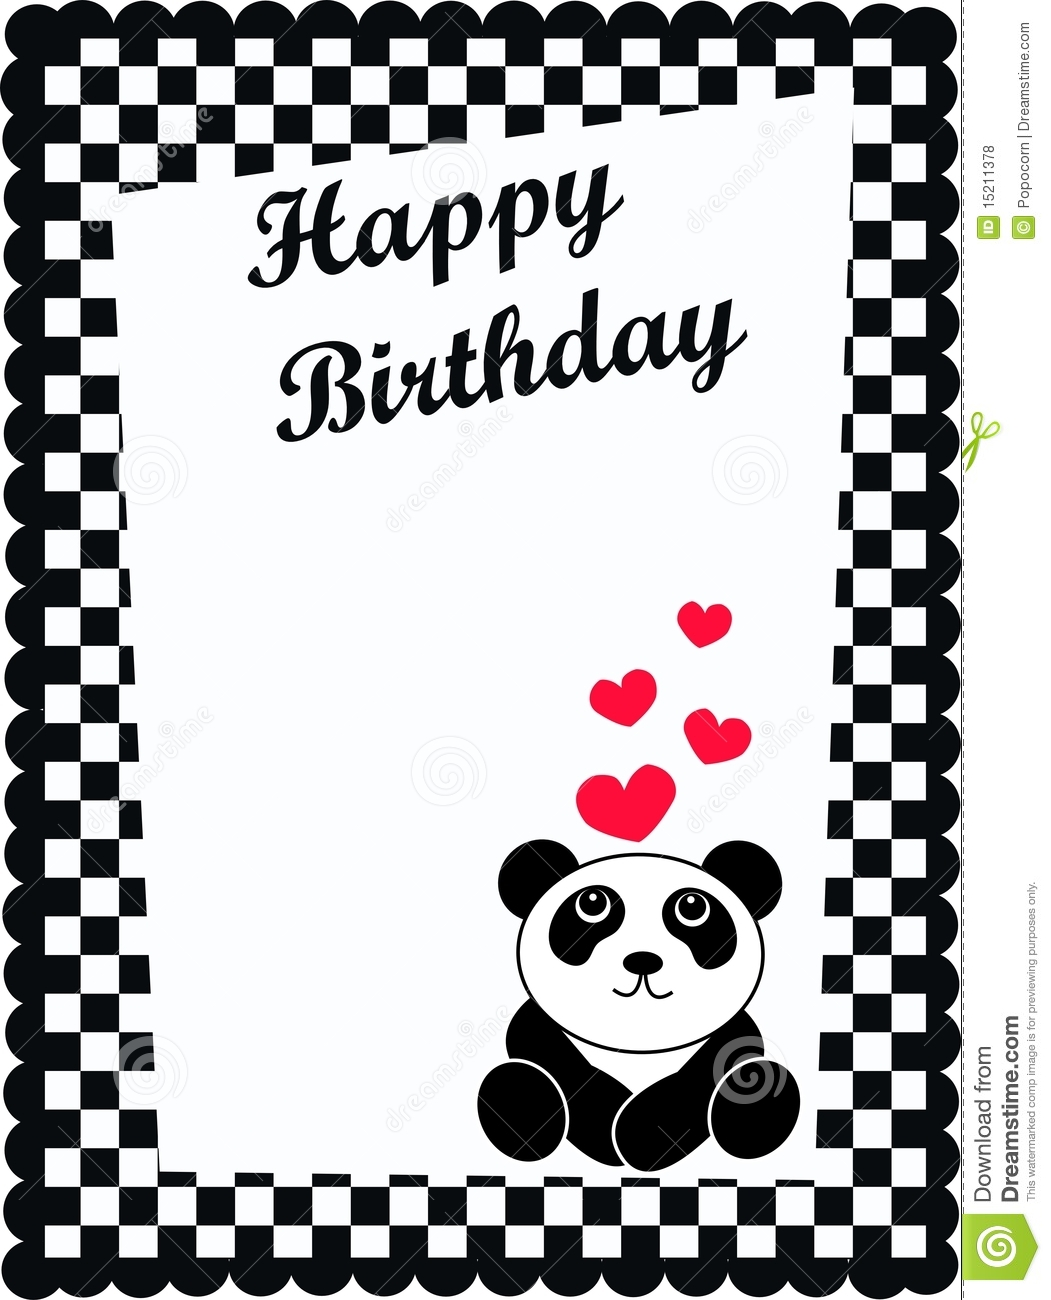 Birthday Card Royalty Free Photos Image 15211378 – Birthday Cards Black and White